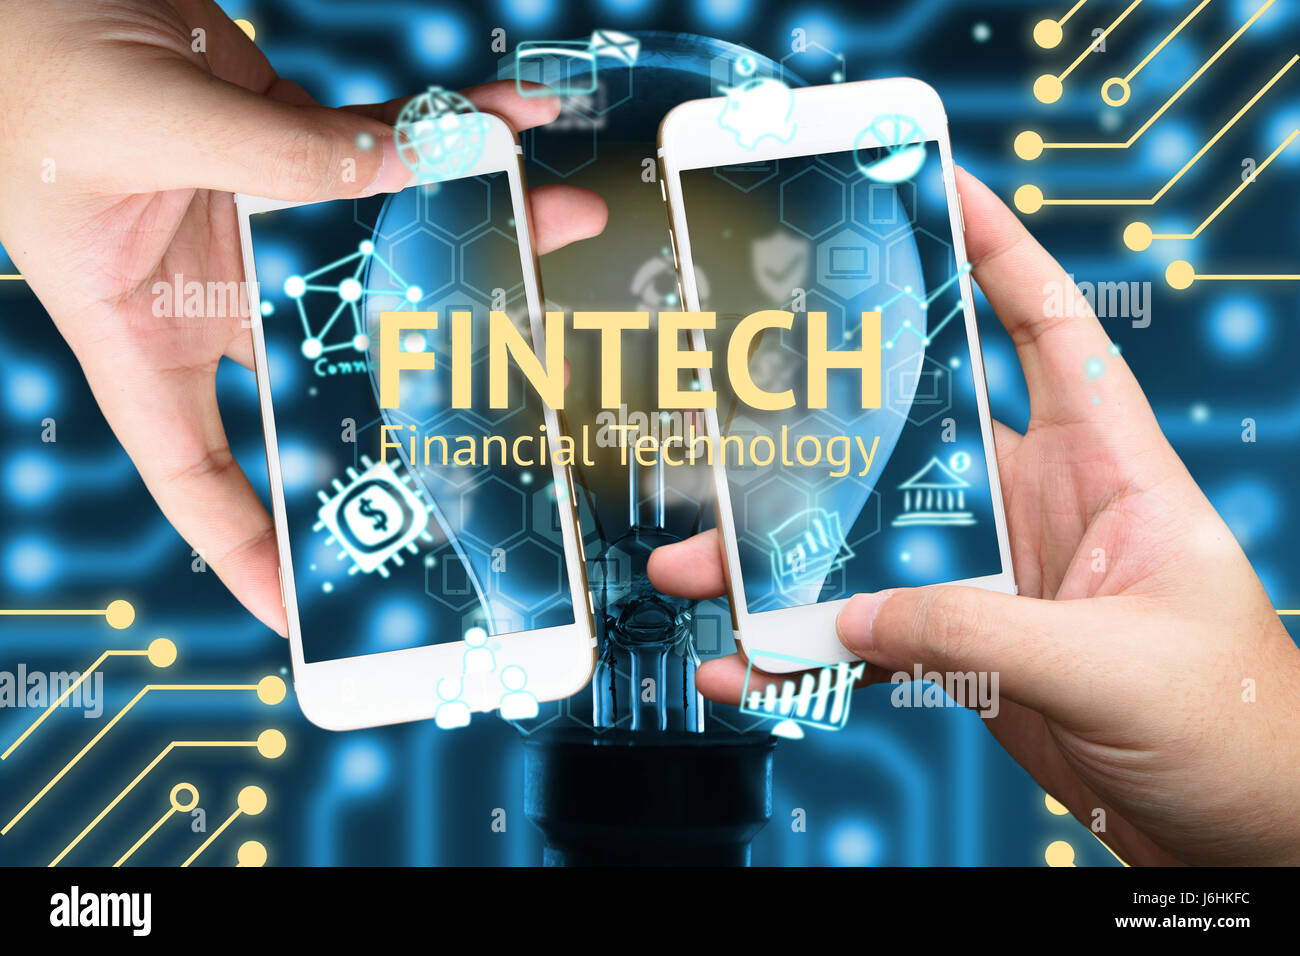 Fintech concept. Two hand holding mobiles phone and icons of financial technology. Light bulb , Infographic , texts - Stock Image